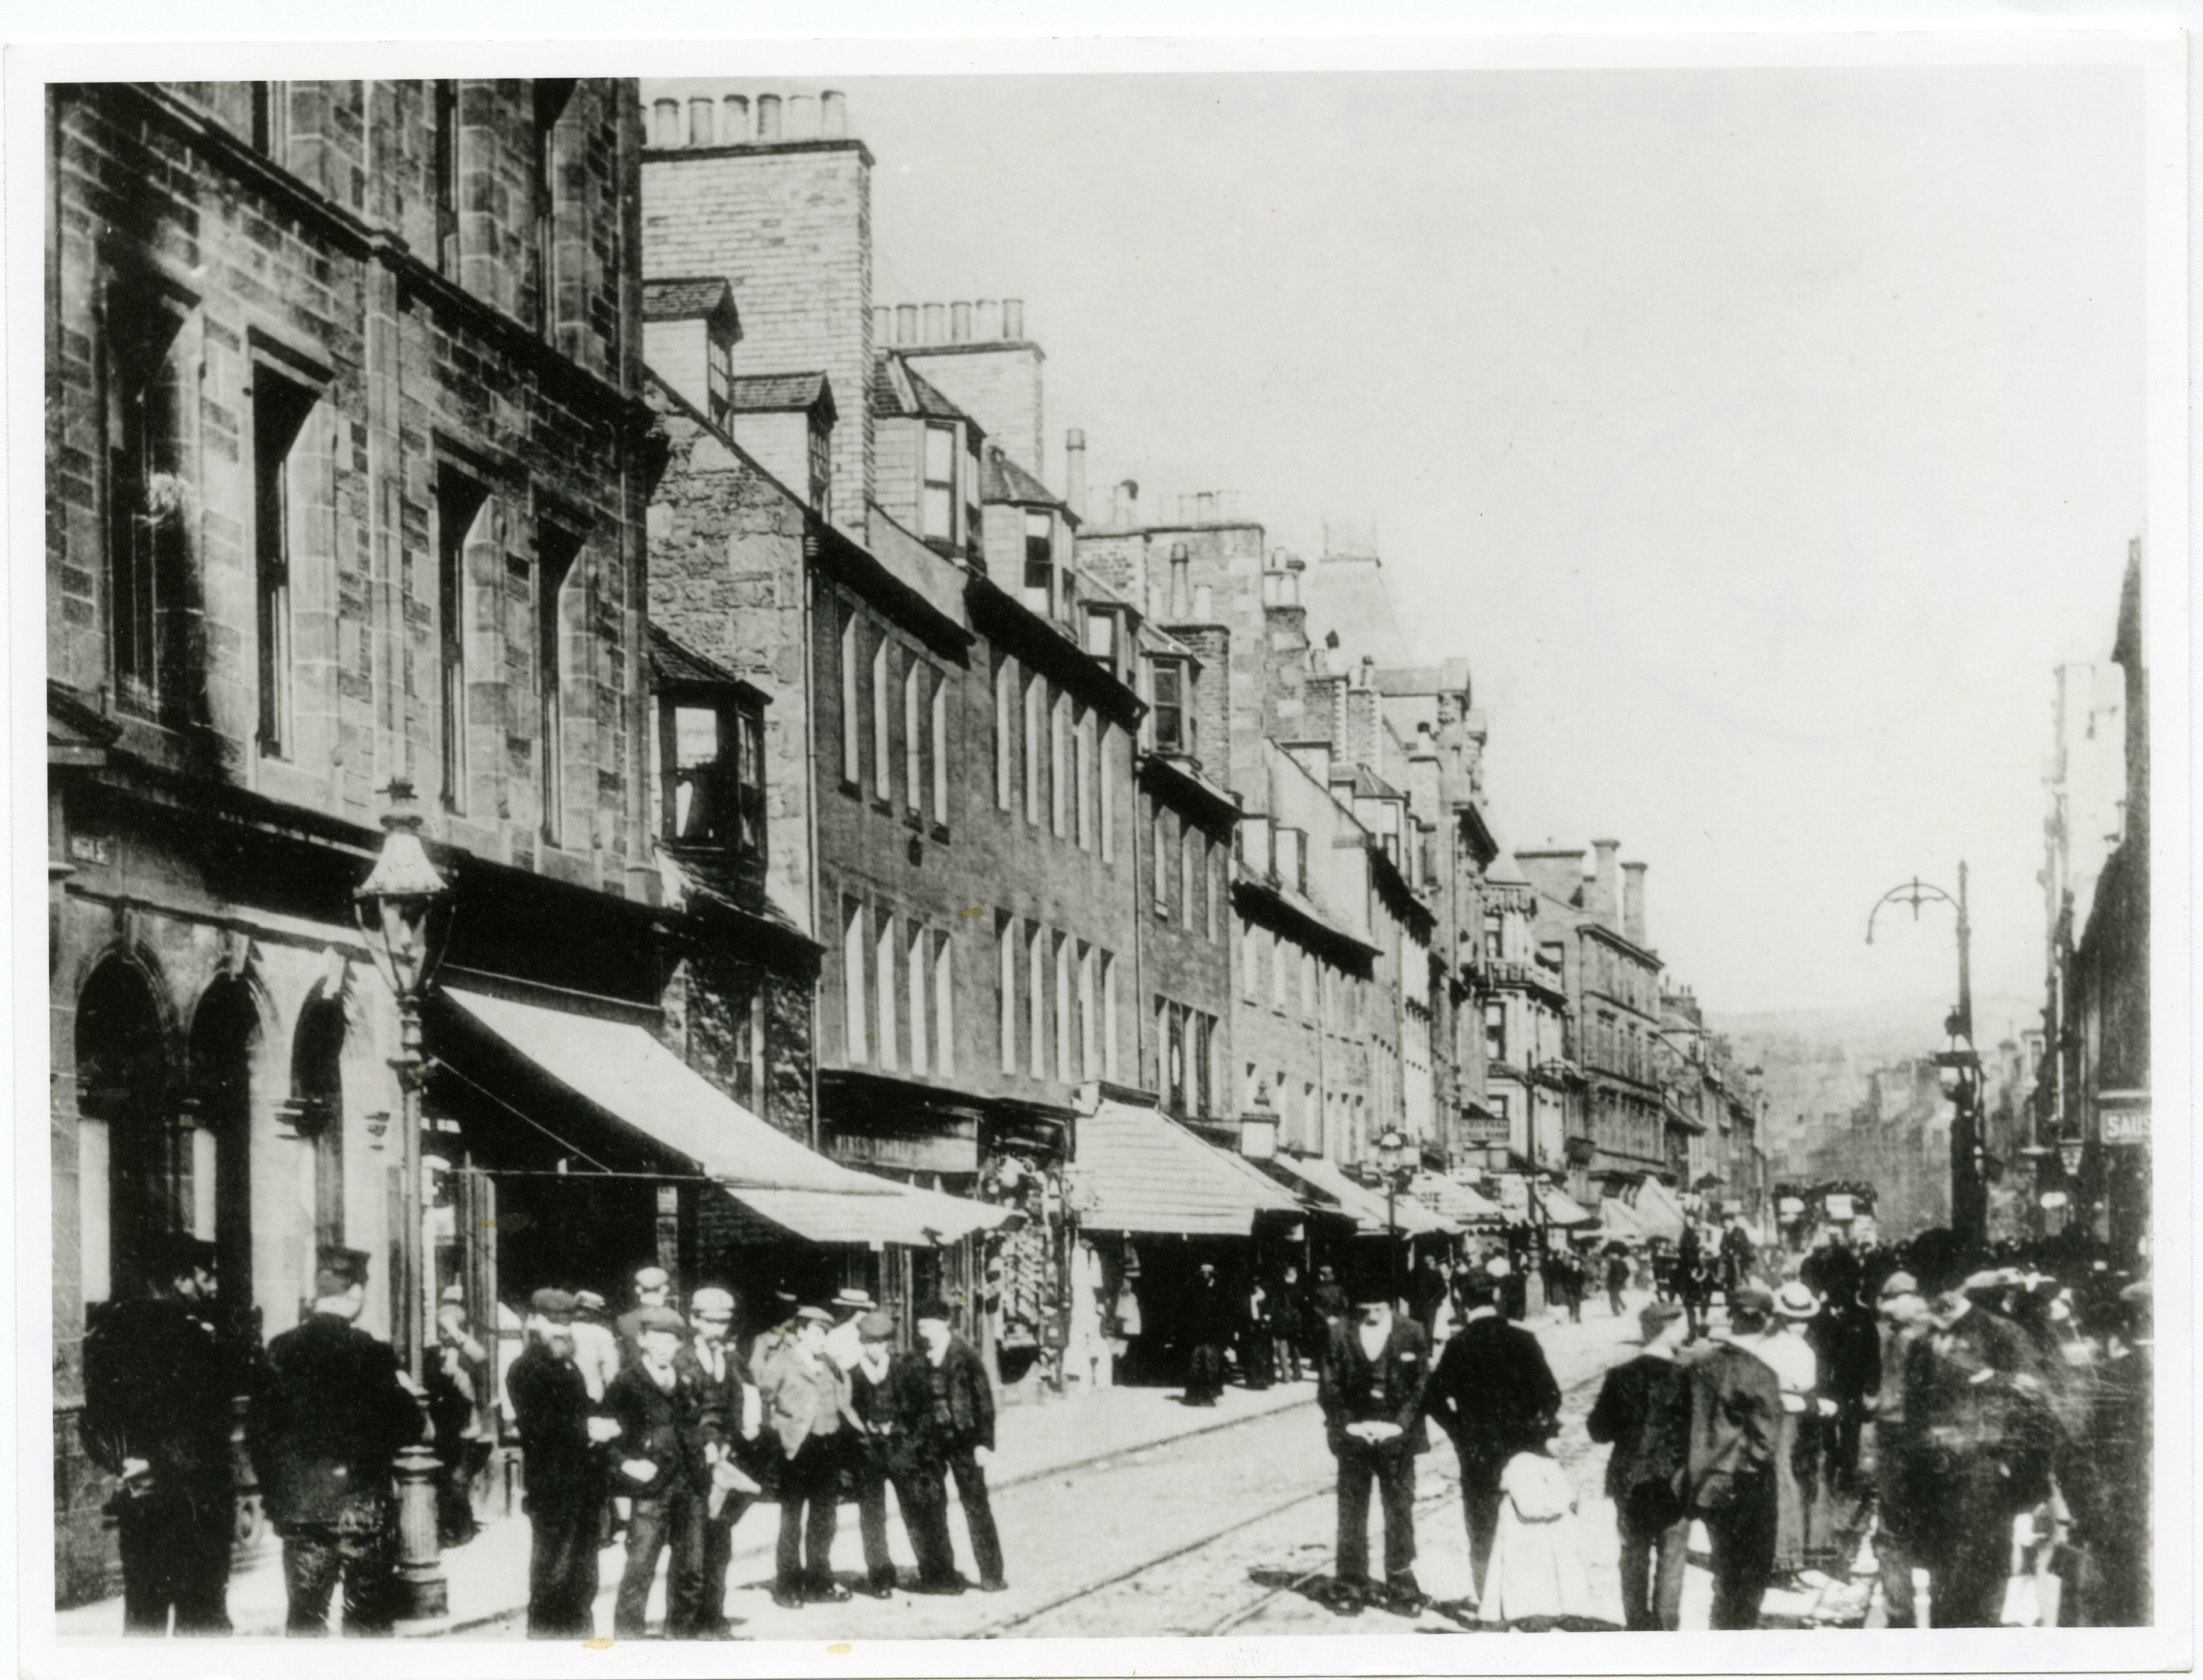 Historic image of High Street, Perth